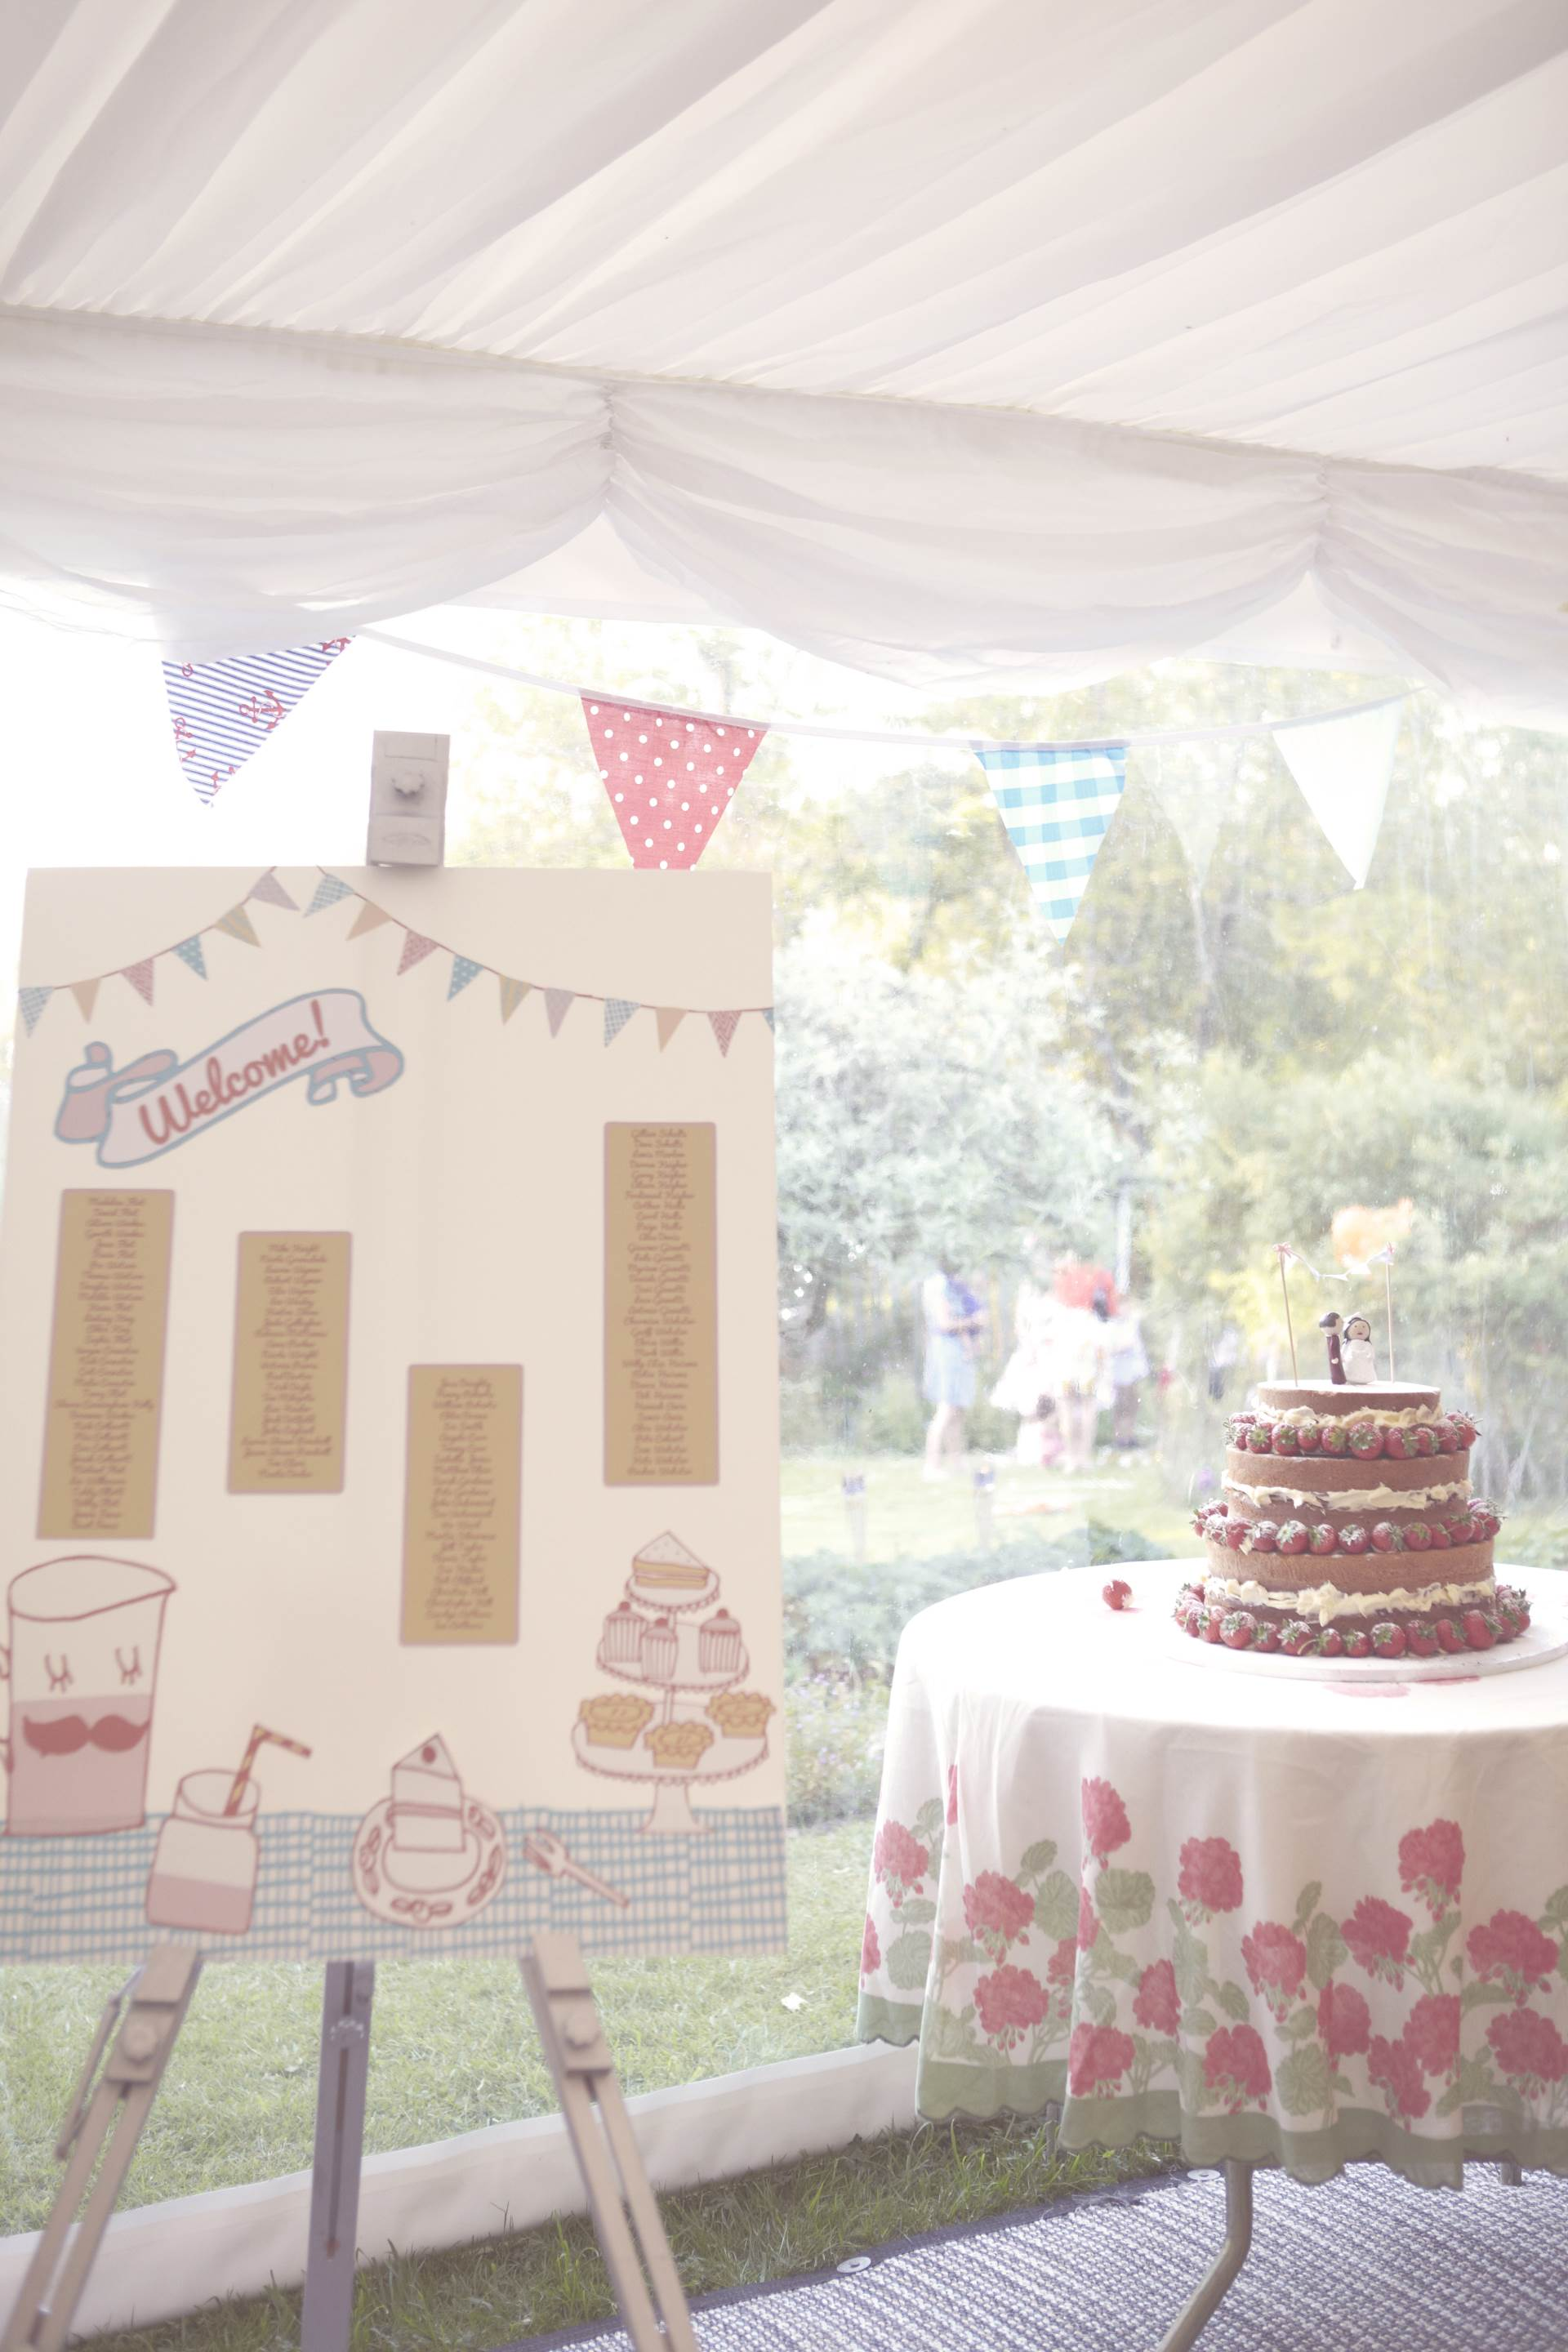 Dan and Maddi's Vintage Americana Country Wedding by Natalie J Weddings and featured on The National Vintage Wedding Fair Dan and Maddi's Vintage Americana Country Wedding by Natalie J Weddings and featured on The National Vintage Wedding Fair